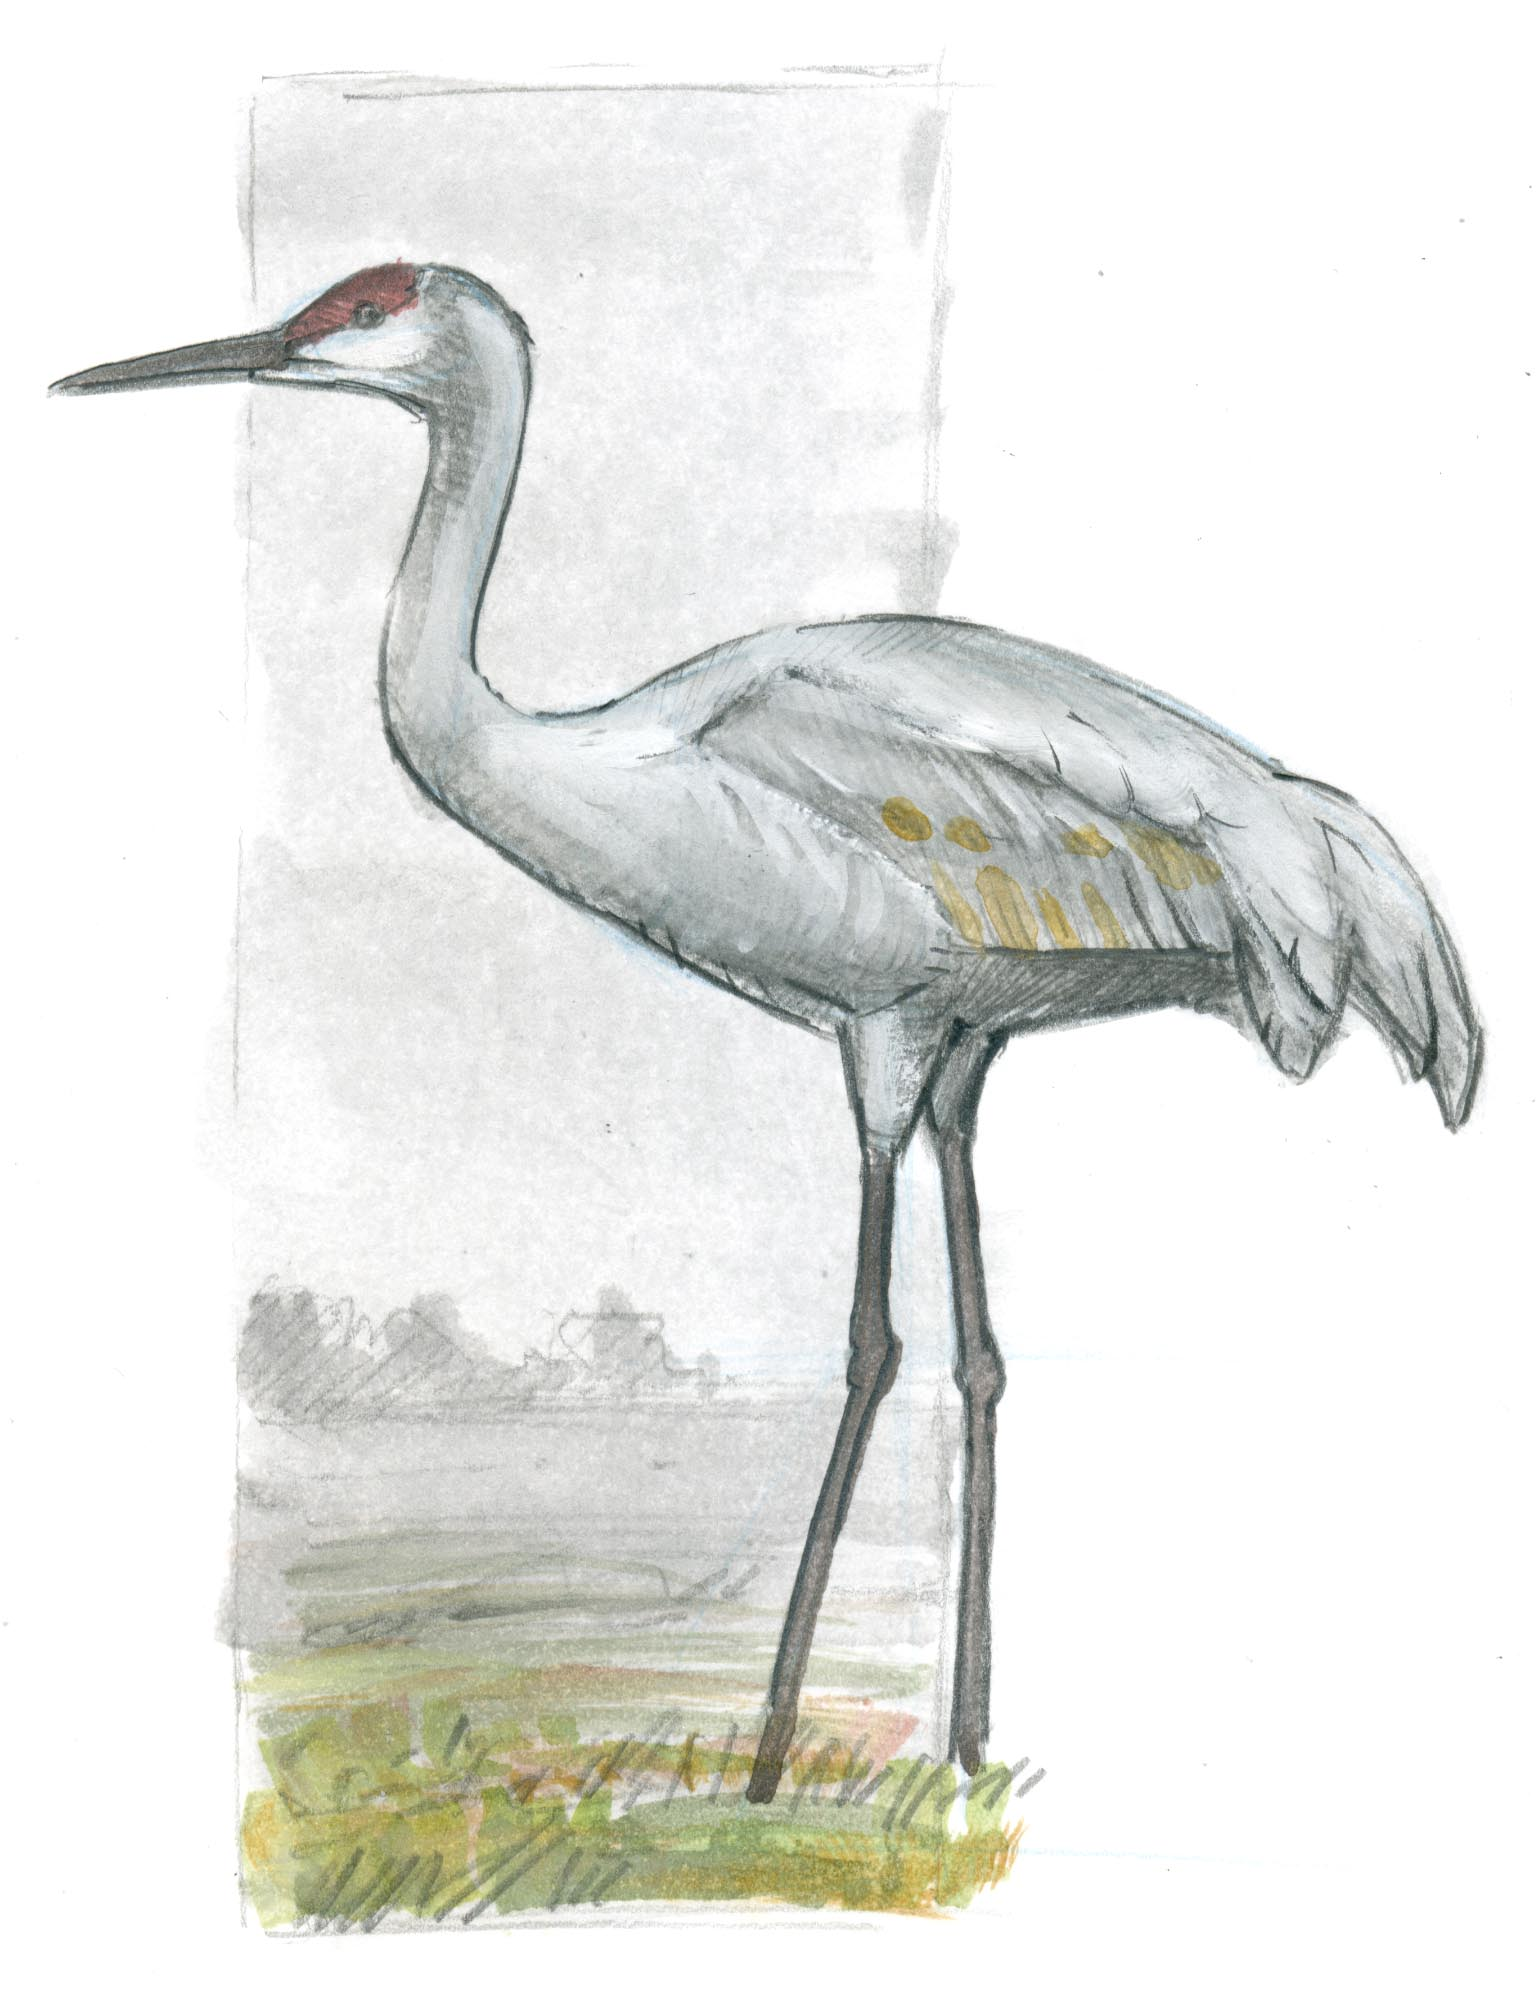 How To Draw A Sandhill Crane Basic Lines - John Muir Laws